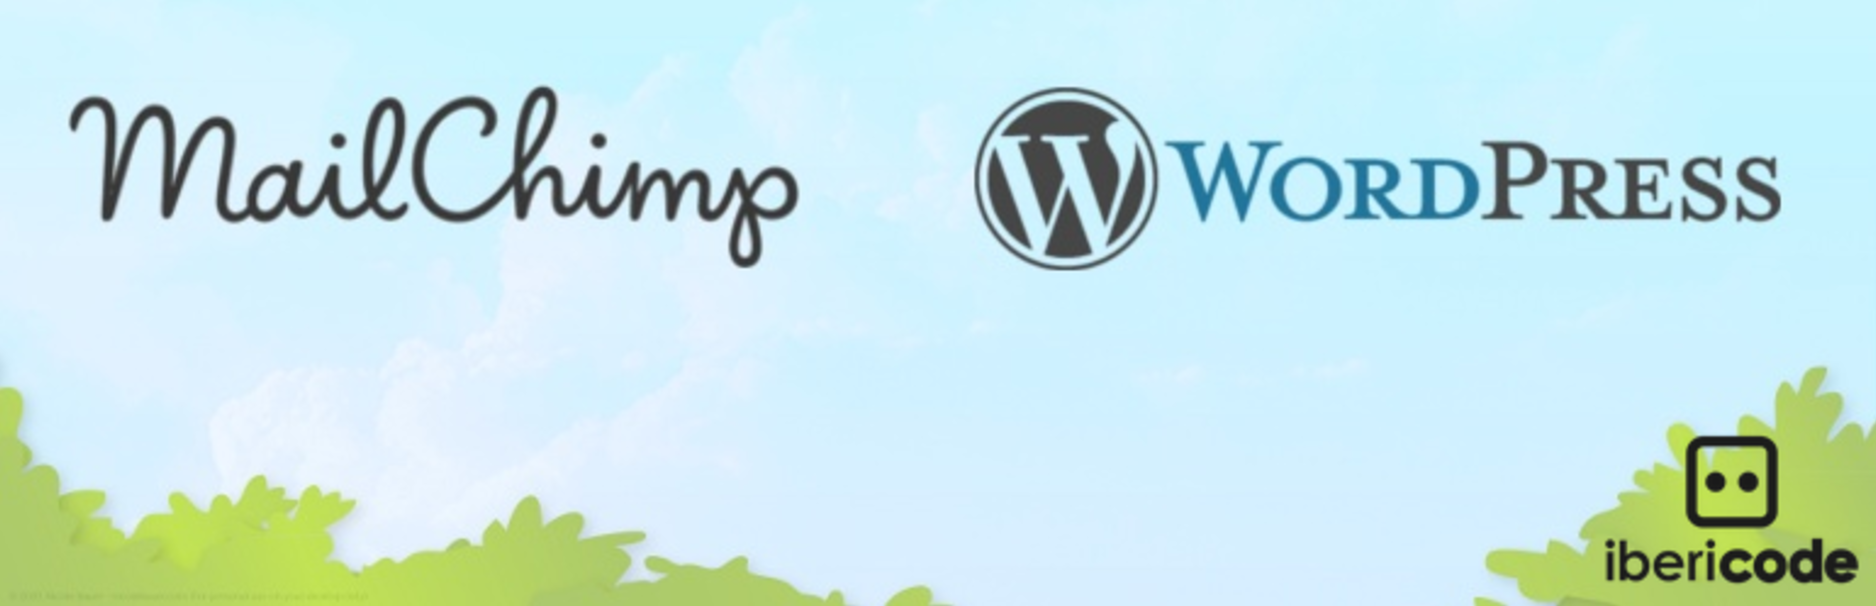 MailChimp per a WordPress